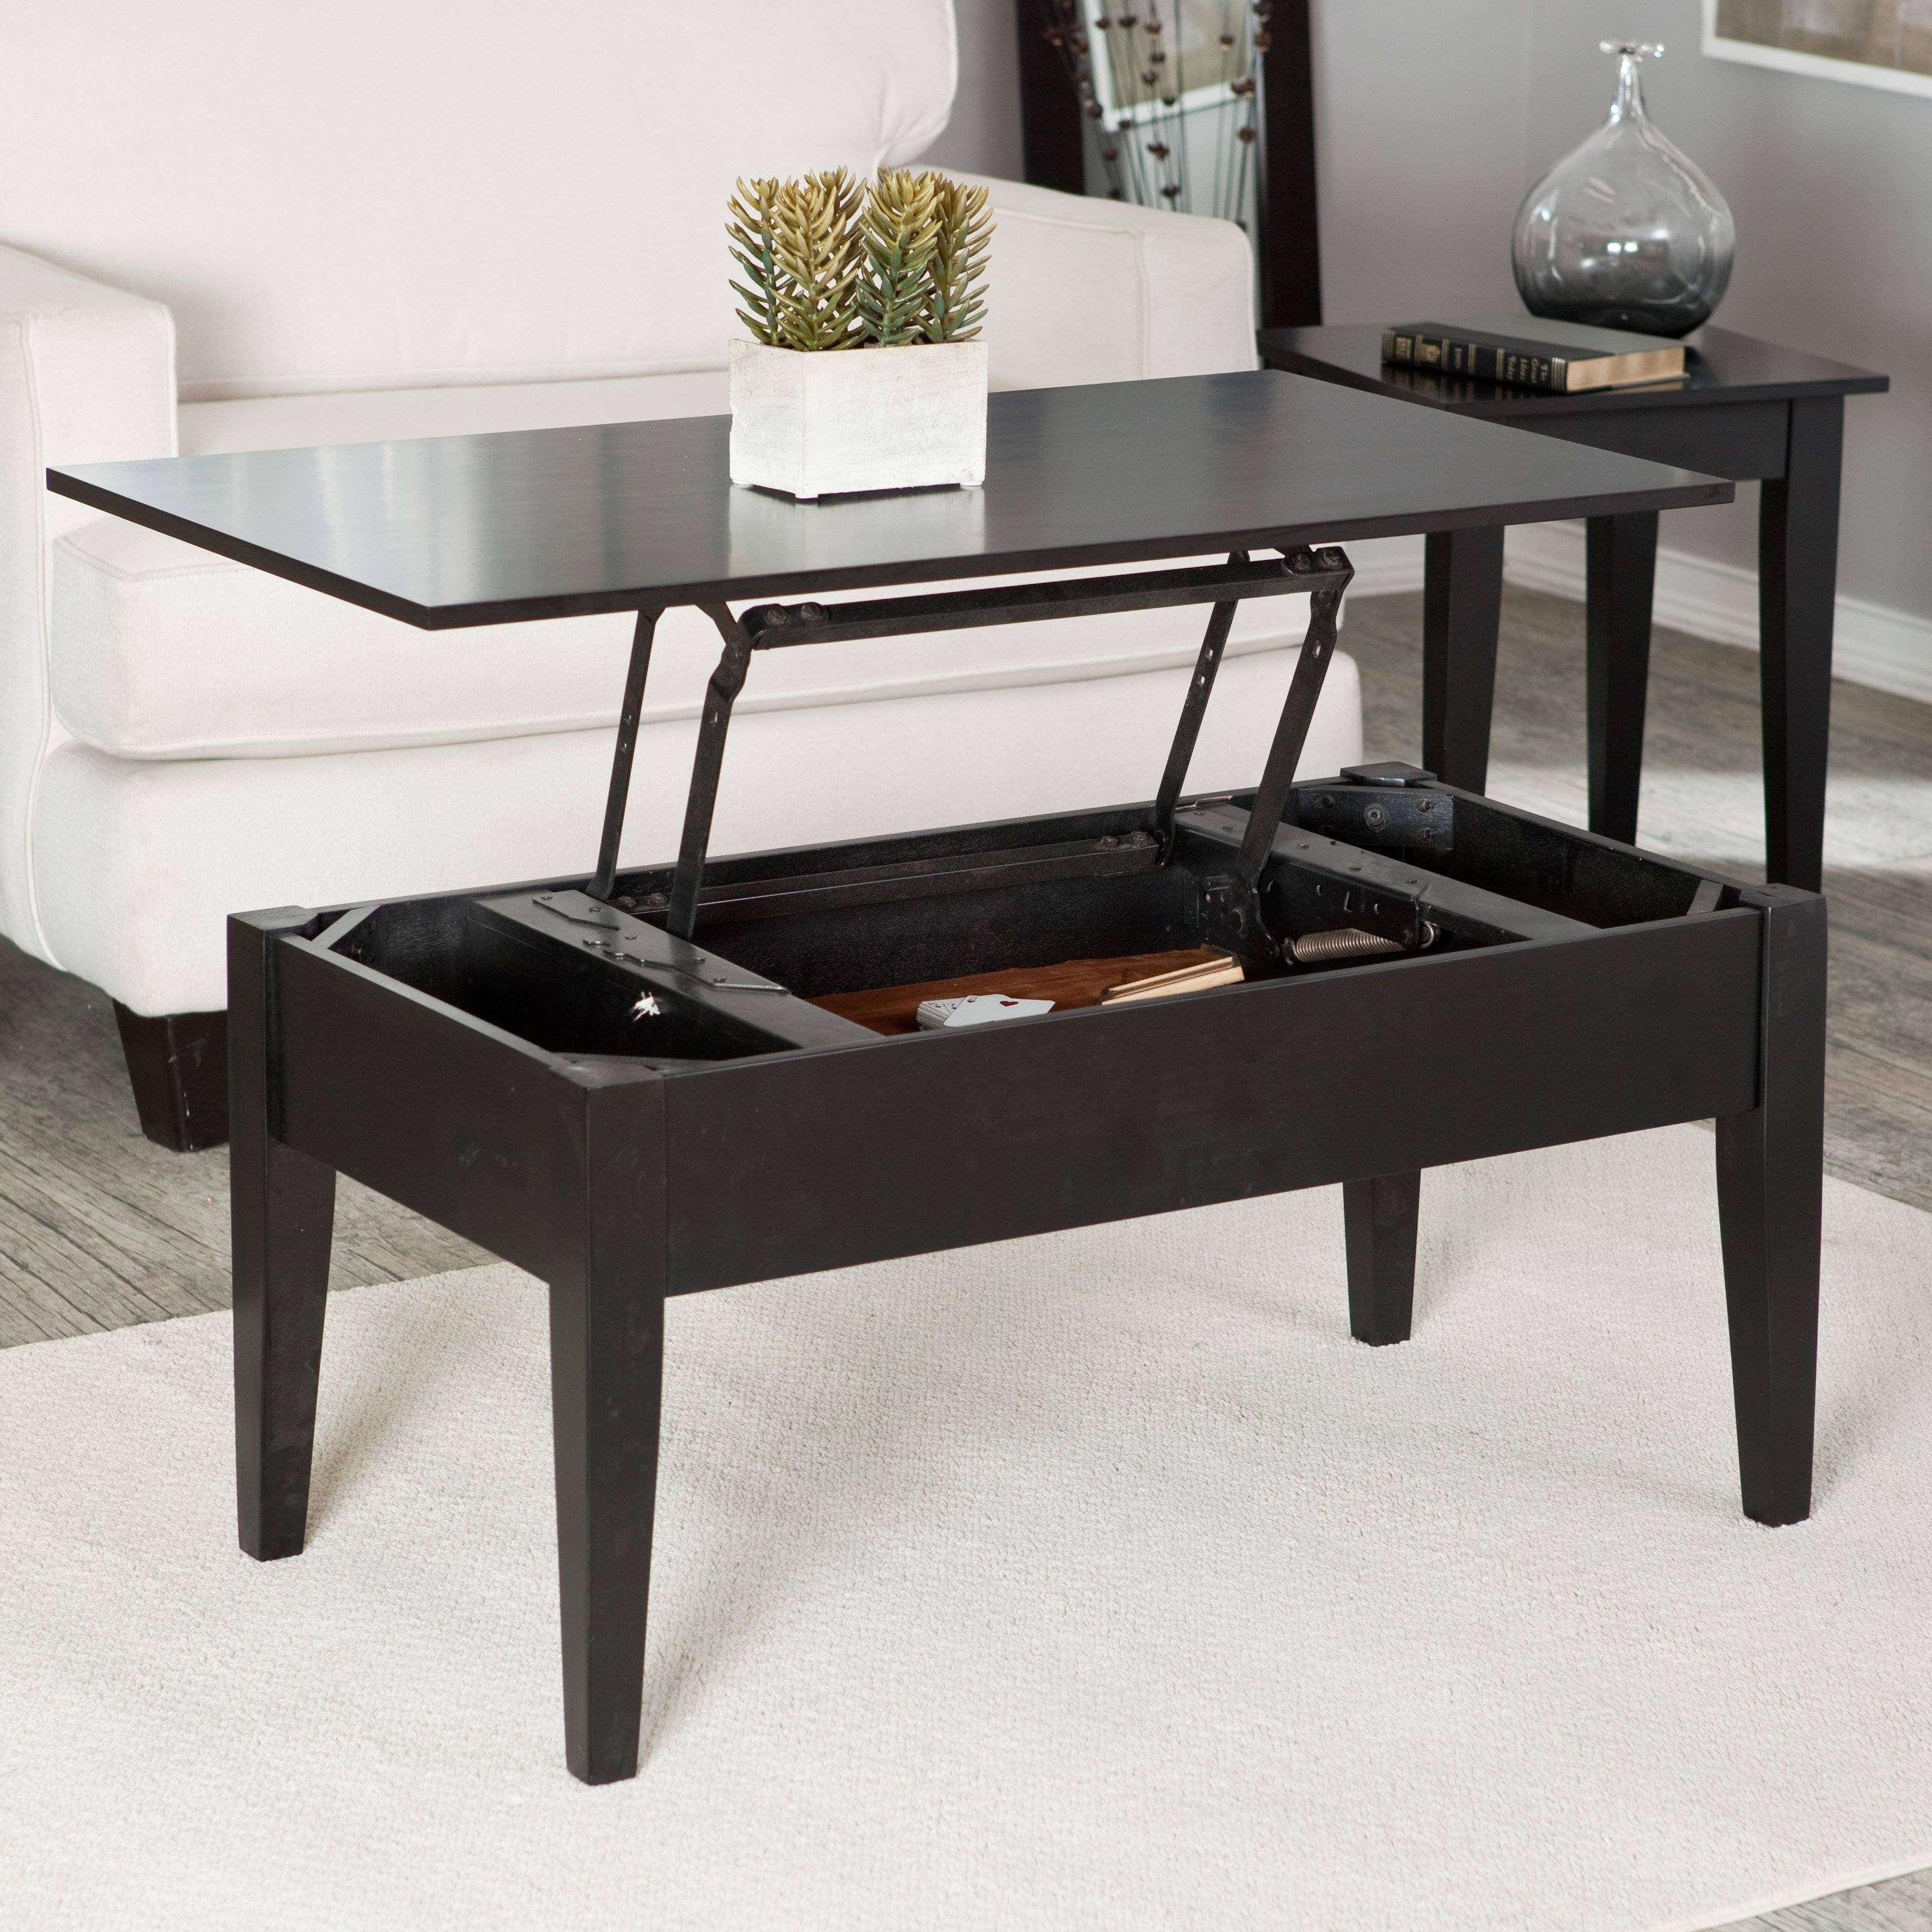 Turner Lift Top Coffee Table   Espresso | Hayneedle Throughout Lifting Coffee Tables (Photo 4 of 30)